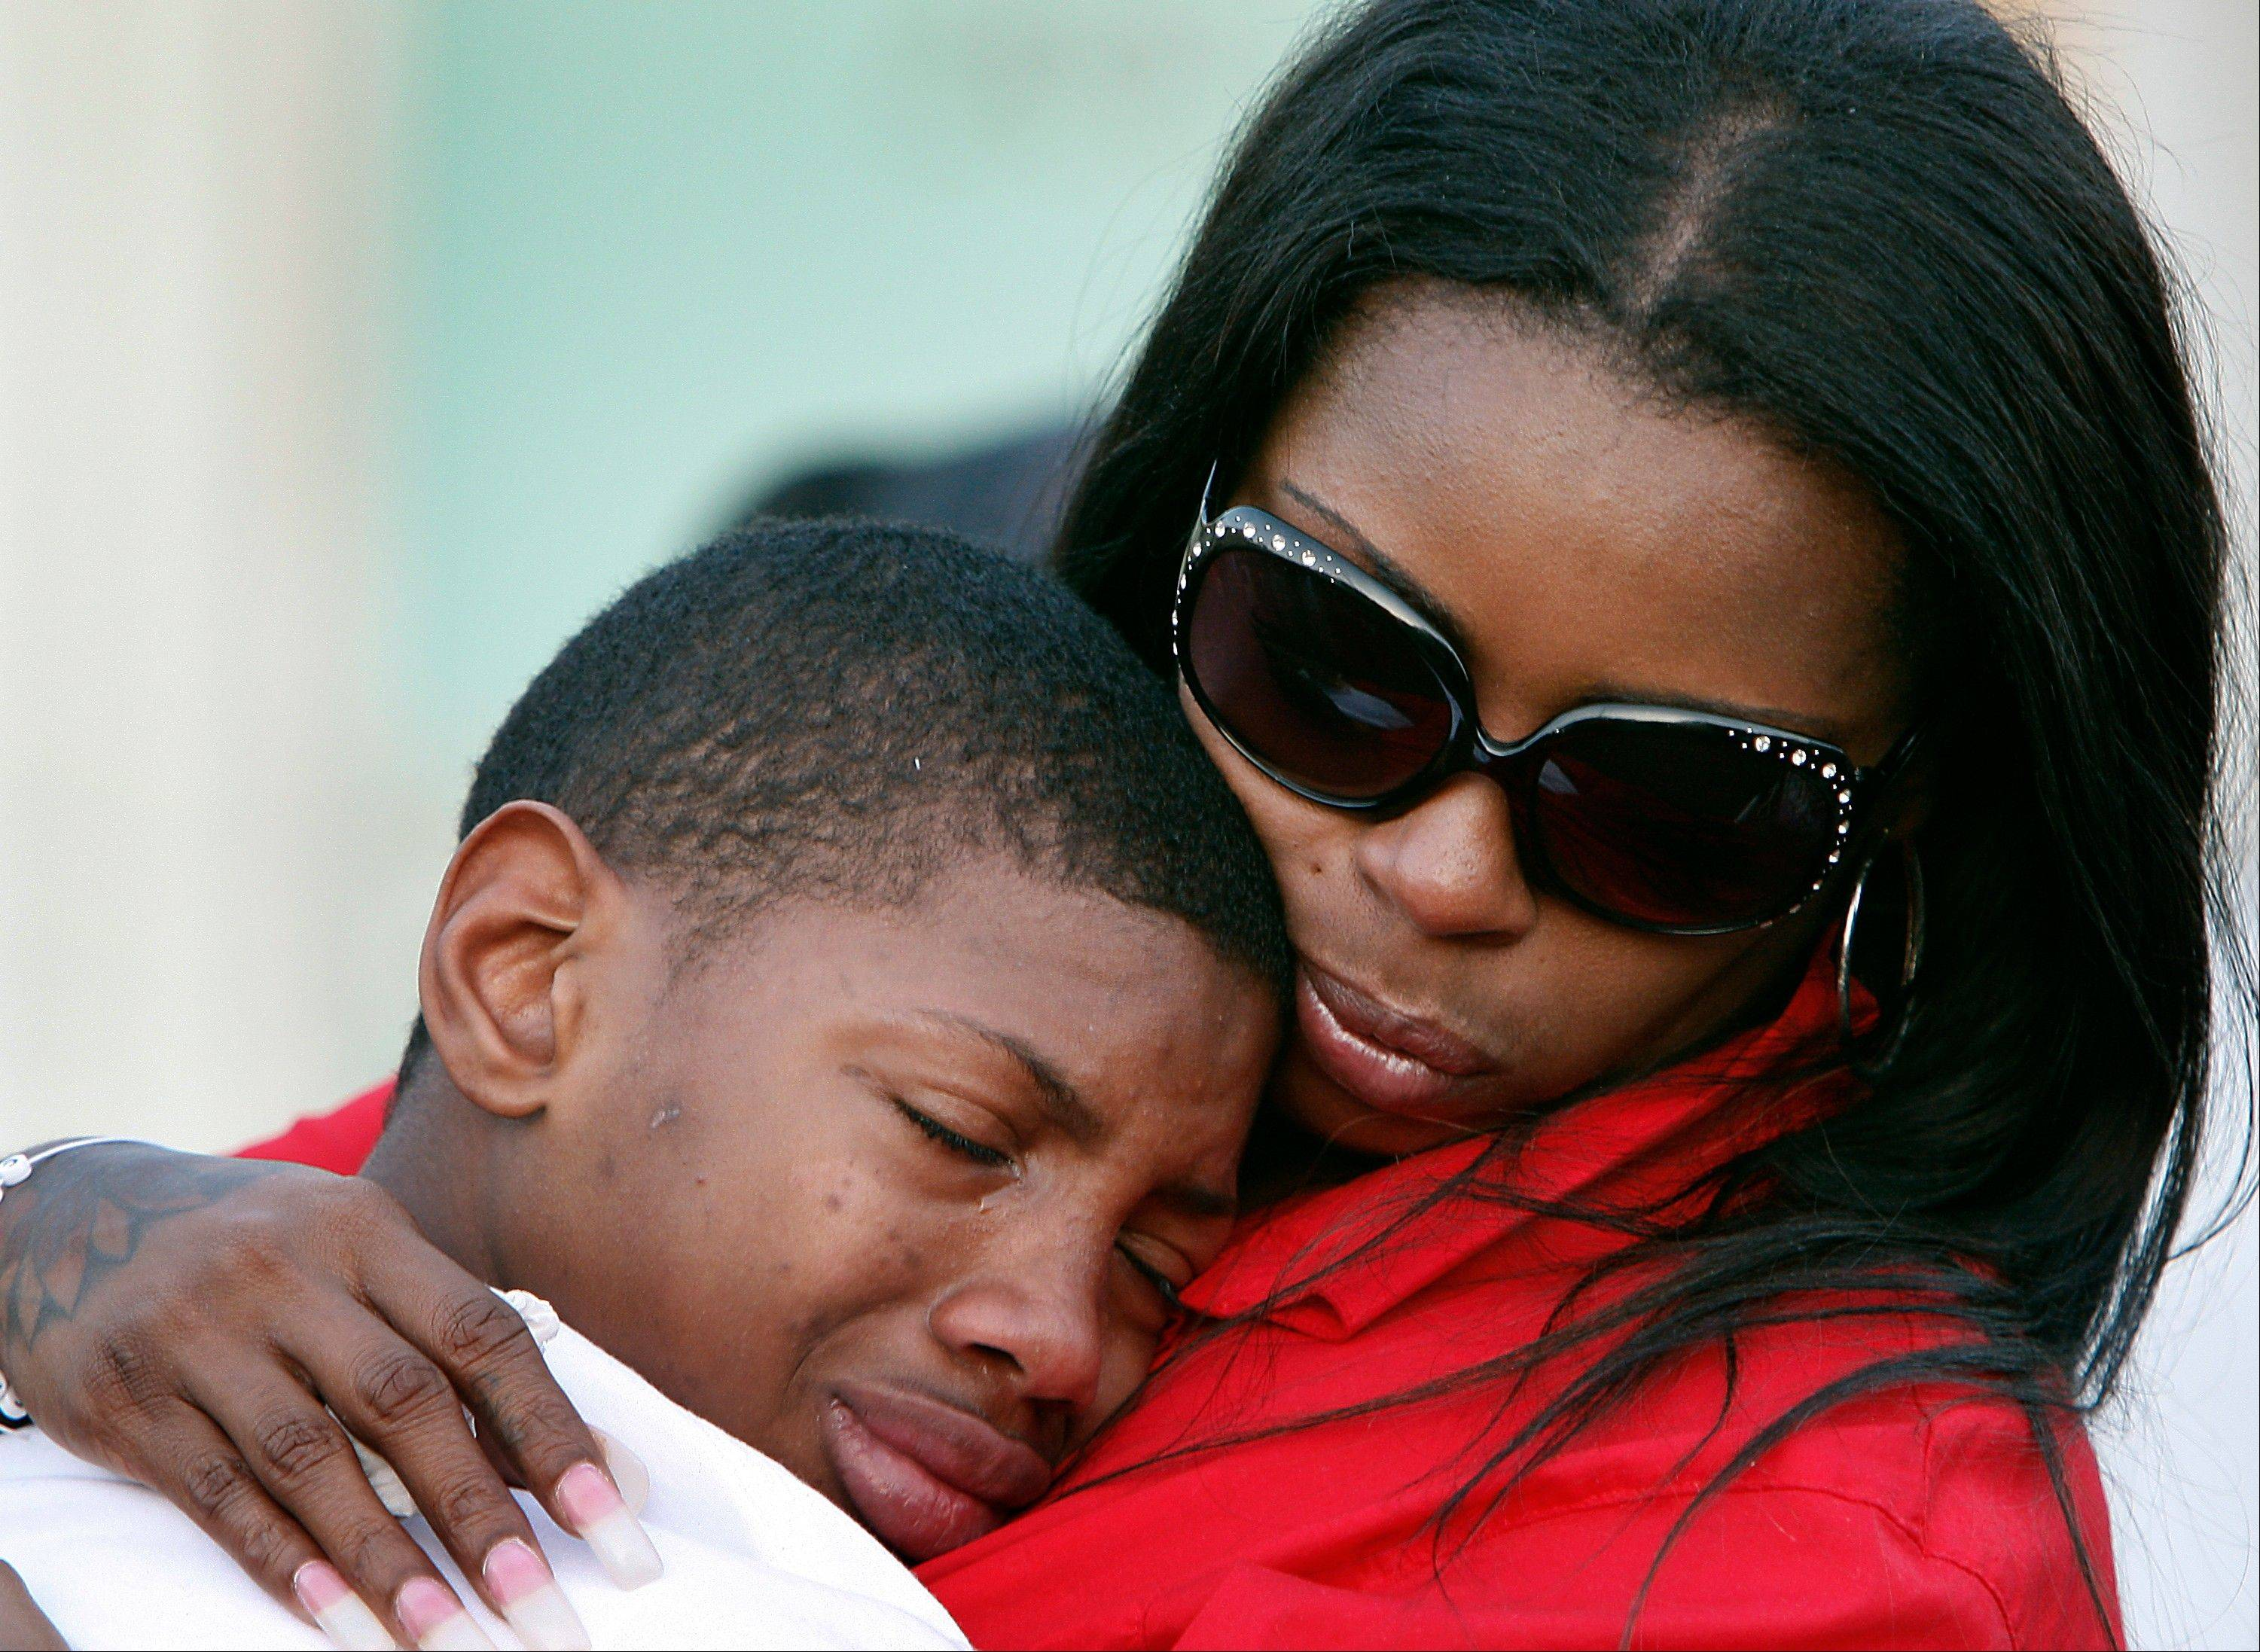 Teresa Carter, right, mother of Chavis Carter, comforts her other son Kizziah Carter on Monday, Aug. 20, 2012 following a prayer vigil held on the grounds of The National Civil Rights Museum in Memphis, Tenn., for Chavis Carter, who Jonesboro, Arkansas, police say committed suicide while handcuffed.